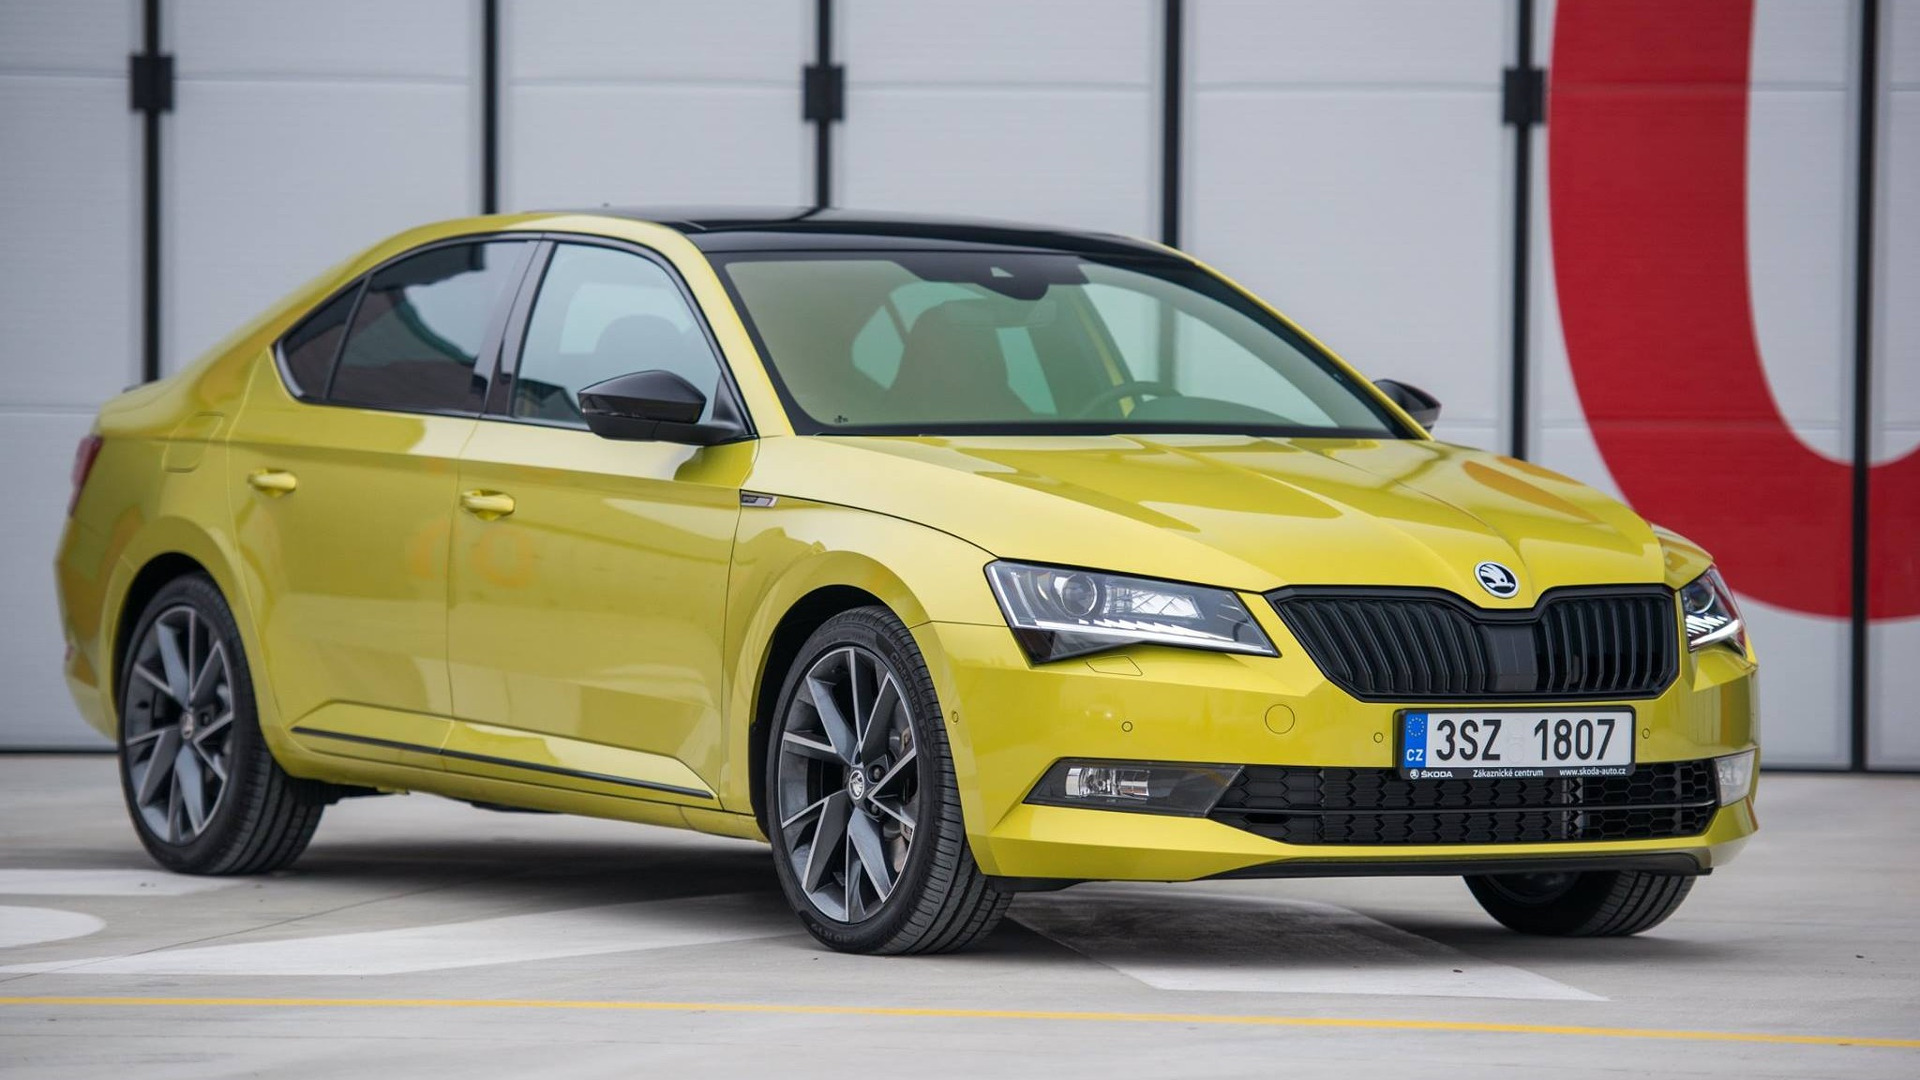 The Skoda Superb Is A Great Drive According To Our Man Bob